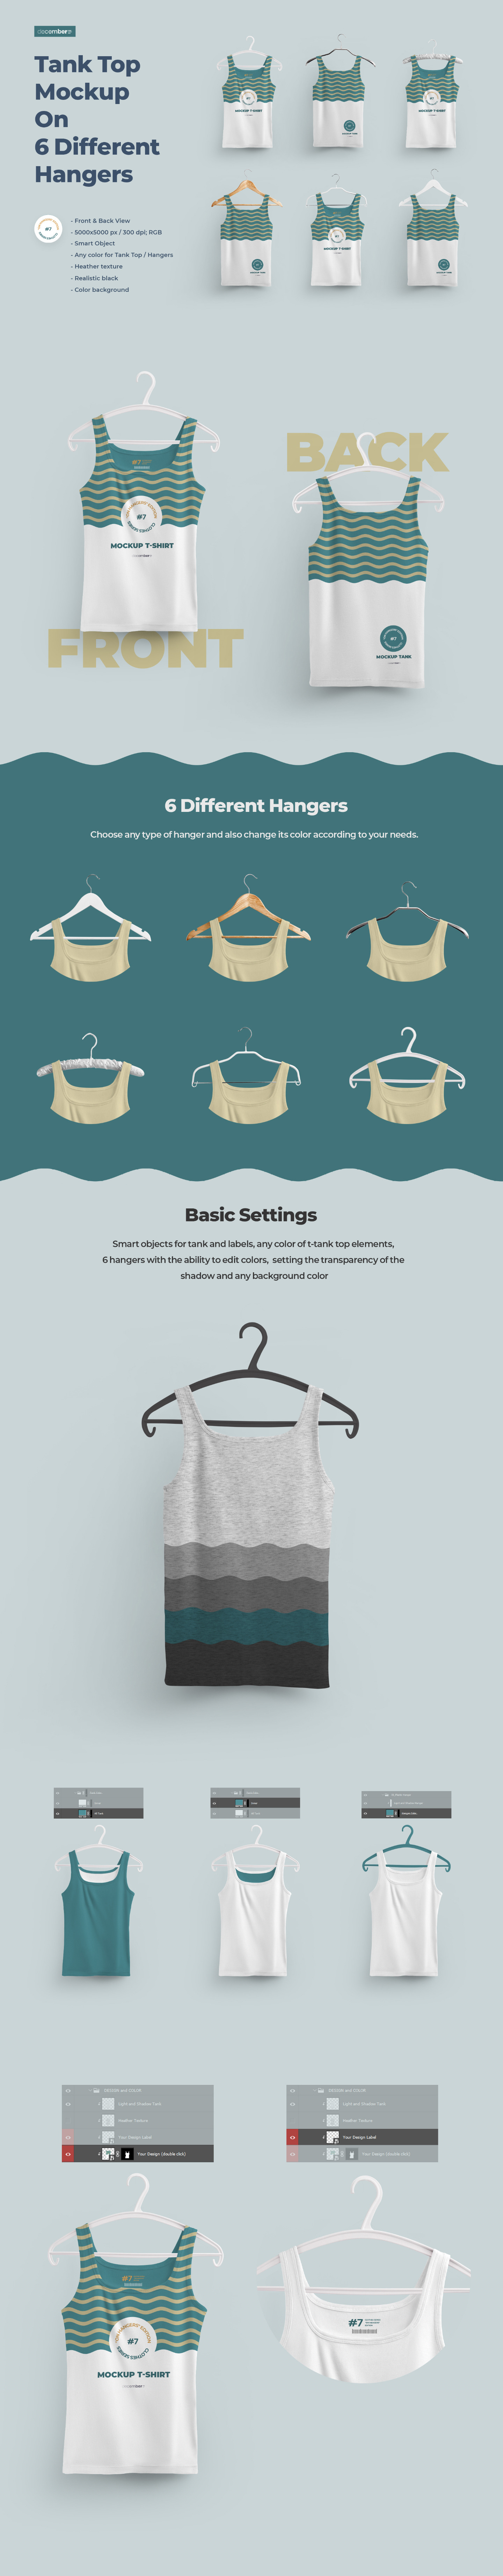 2 Mockups  Tank Top With 6 Different Hangers